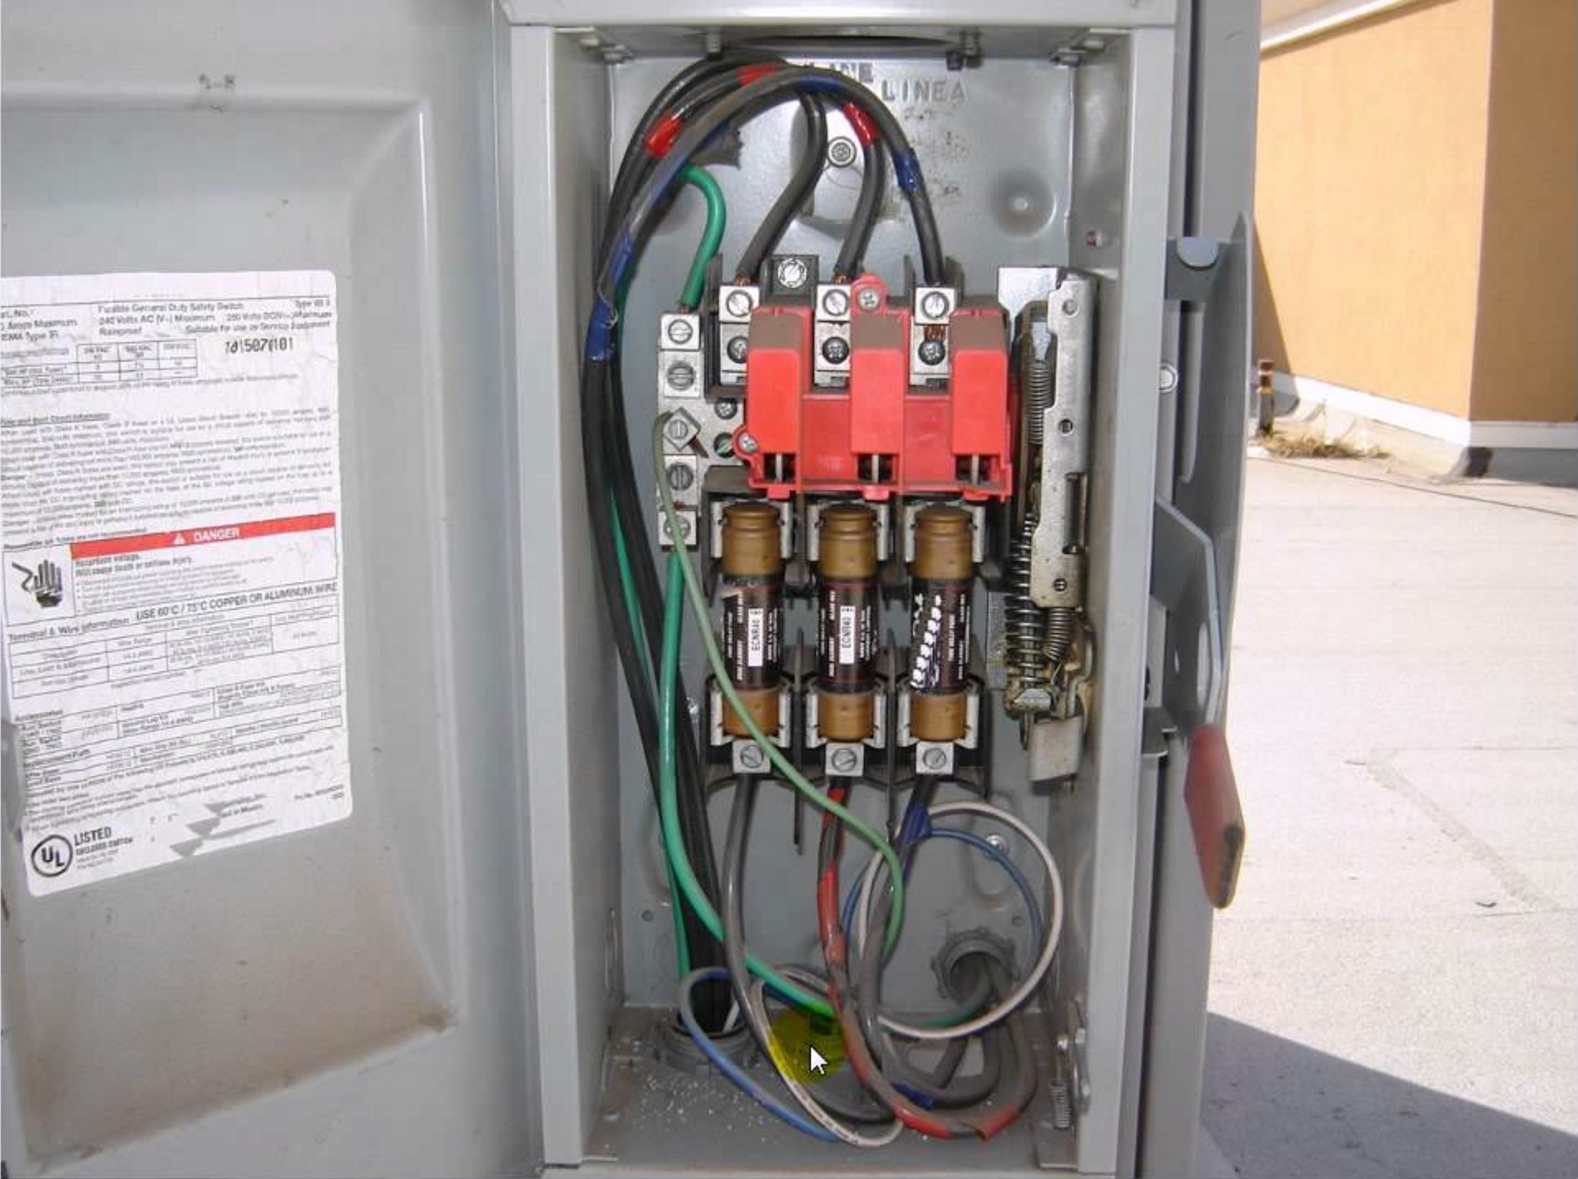 Wiring Disconnect Box - Wiring Diagram Update on 3 phase electric generators, a c compressor diagram, 3 phase motor wiring, 220 volt single phase motor wiring diagram, air compressor electrical diagram, basic harley wiring diagram, 3 phase wiring for dummies, 3 phase breaker diagram,